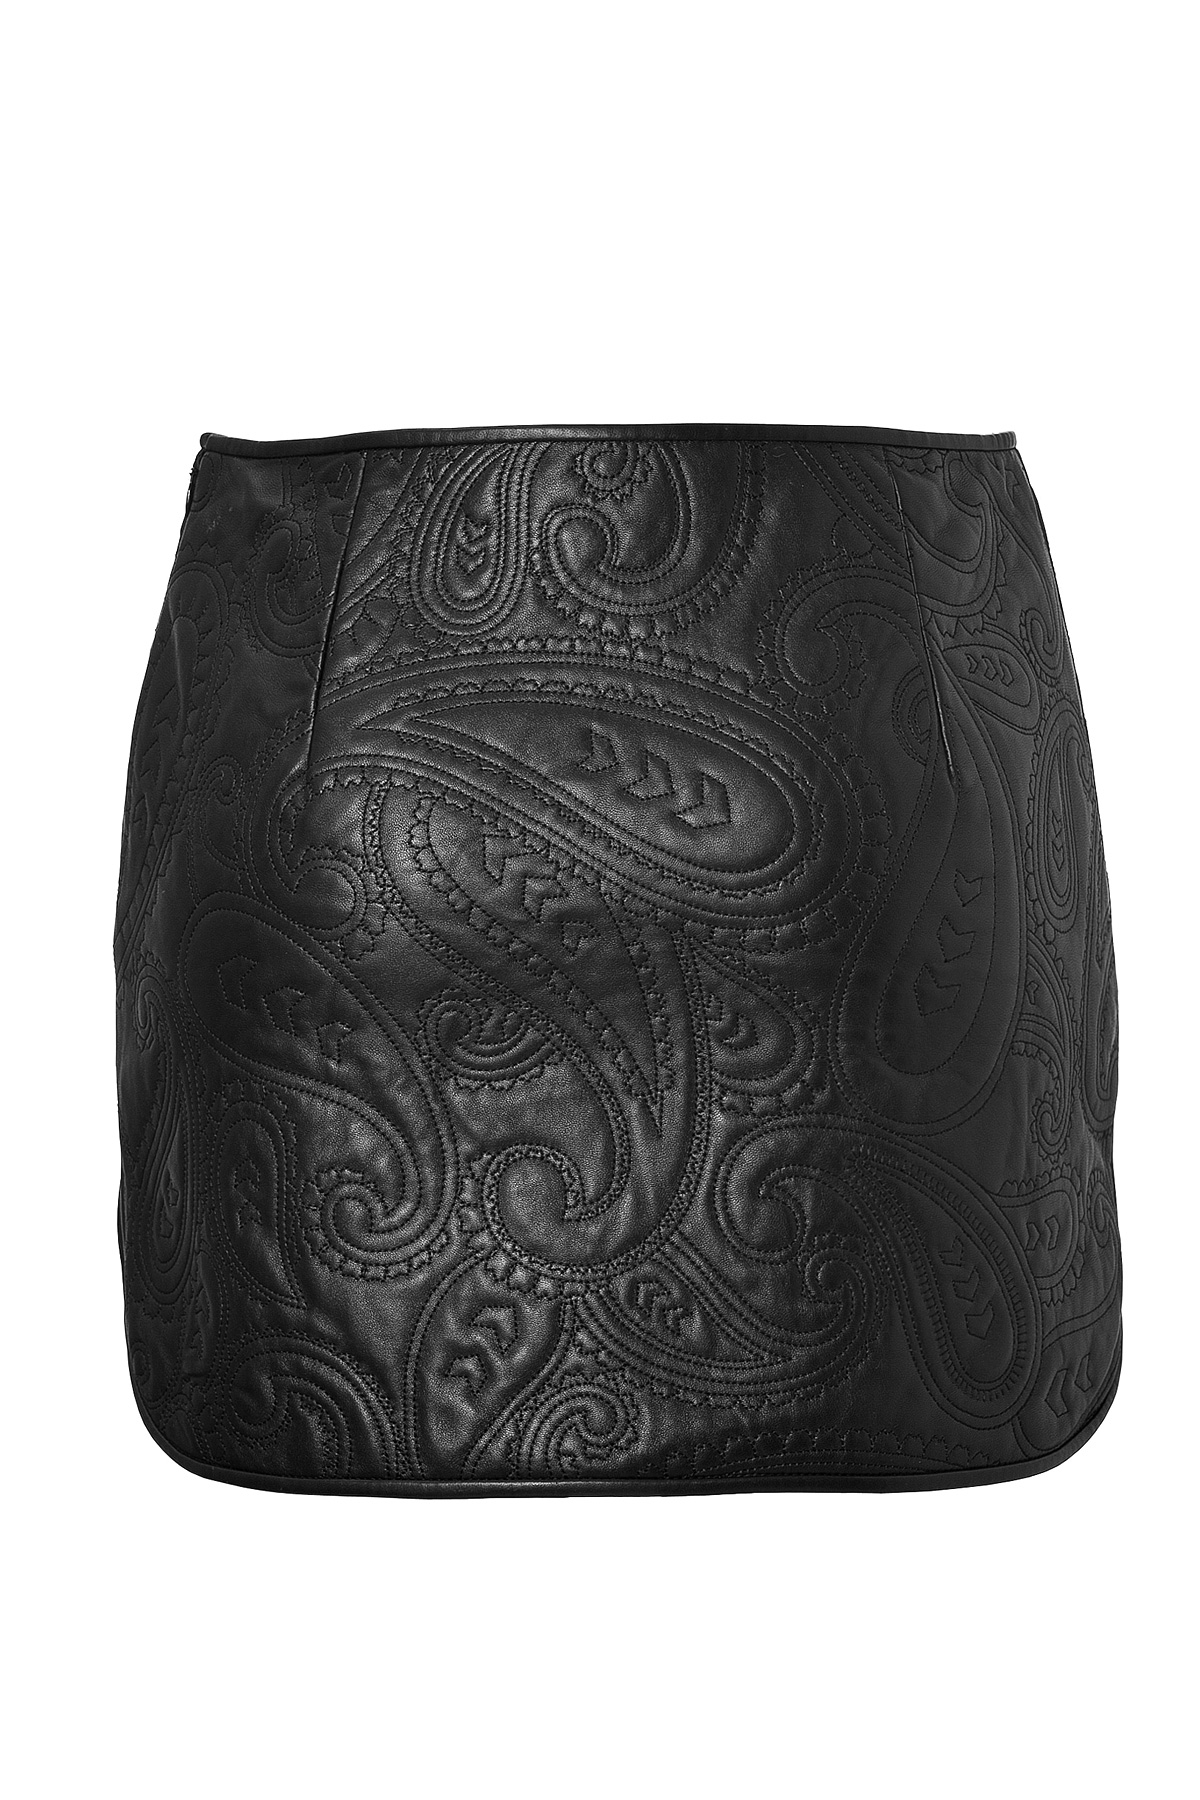 wang quilted leather skirt in black lyst